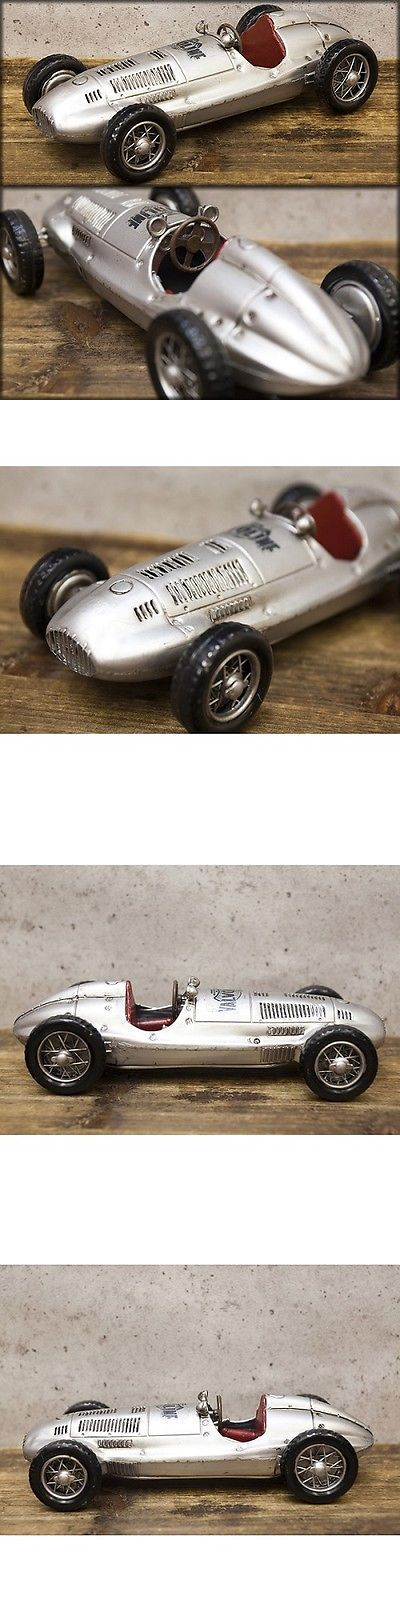 Vintage Manufacture 180534: Model Vintage Tin Plate Silver F1 Racing Car Free Shipping!Q7307-3 -> BUY IT NOW ONLY: $89 on eBay!